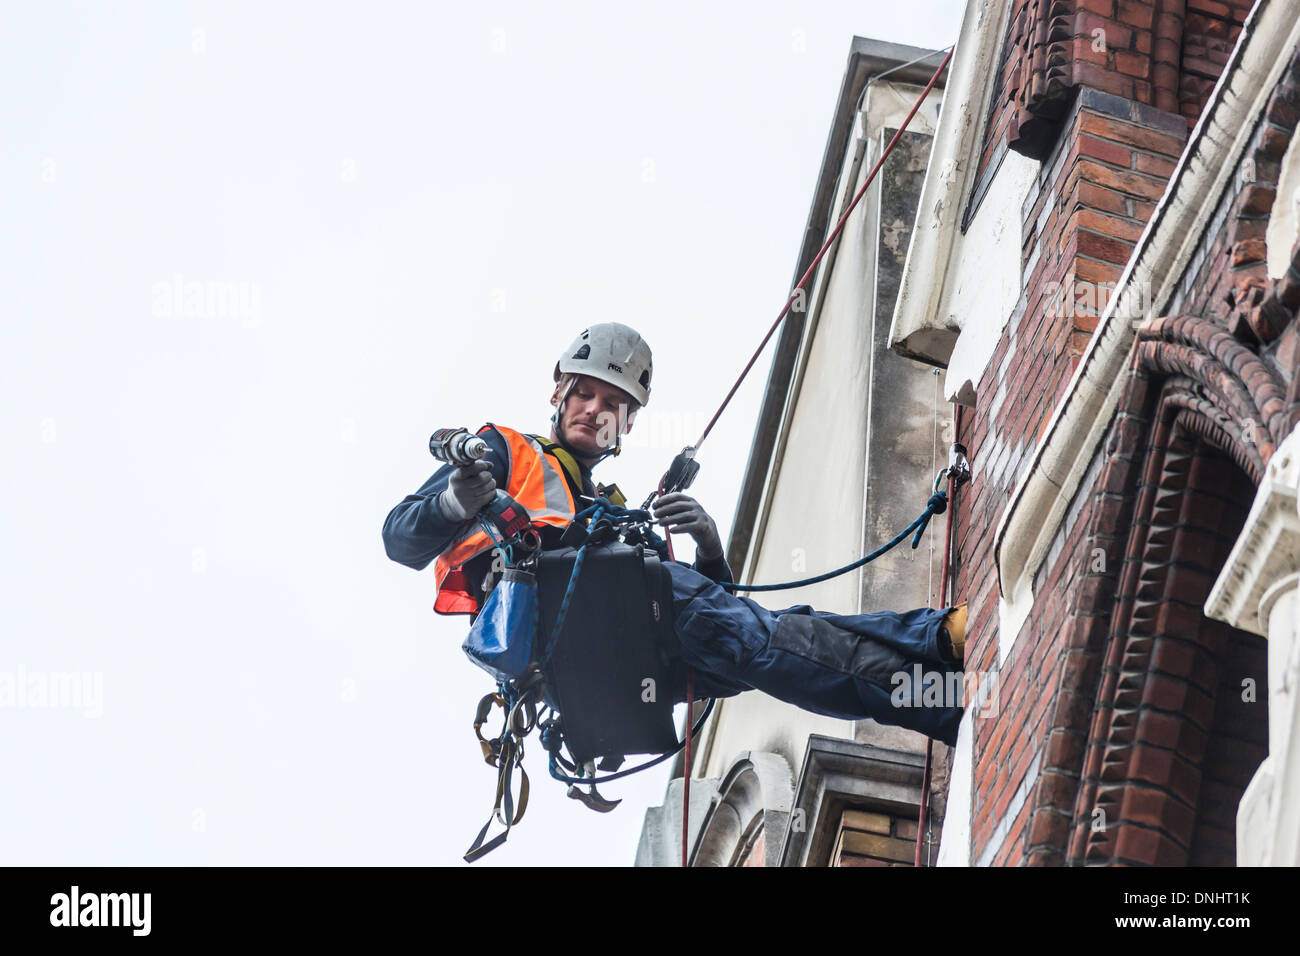 Specialist jobs: Workman carrying tools abseiling down the exterior of a building in London in a safety harness Stock Photo